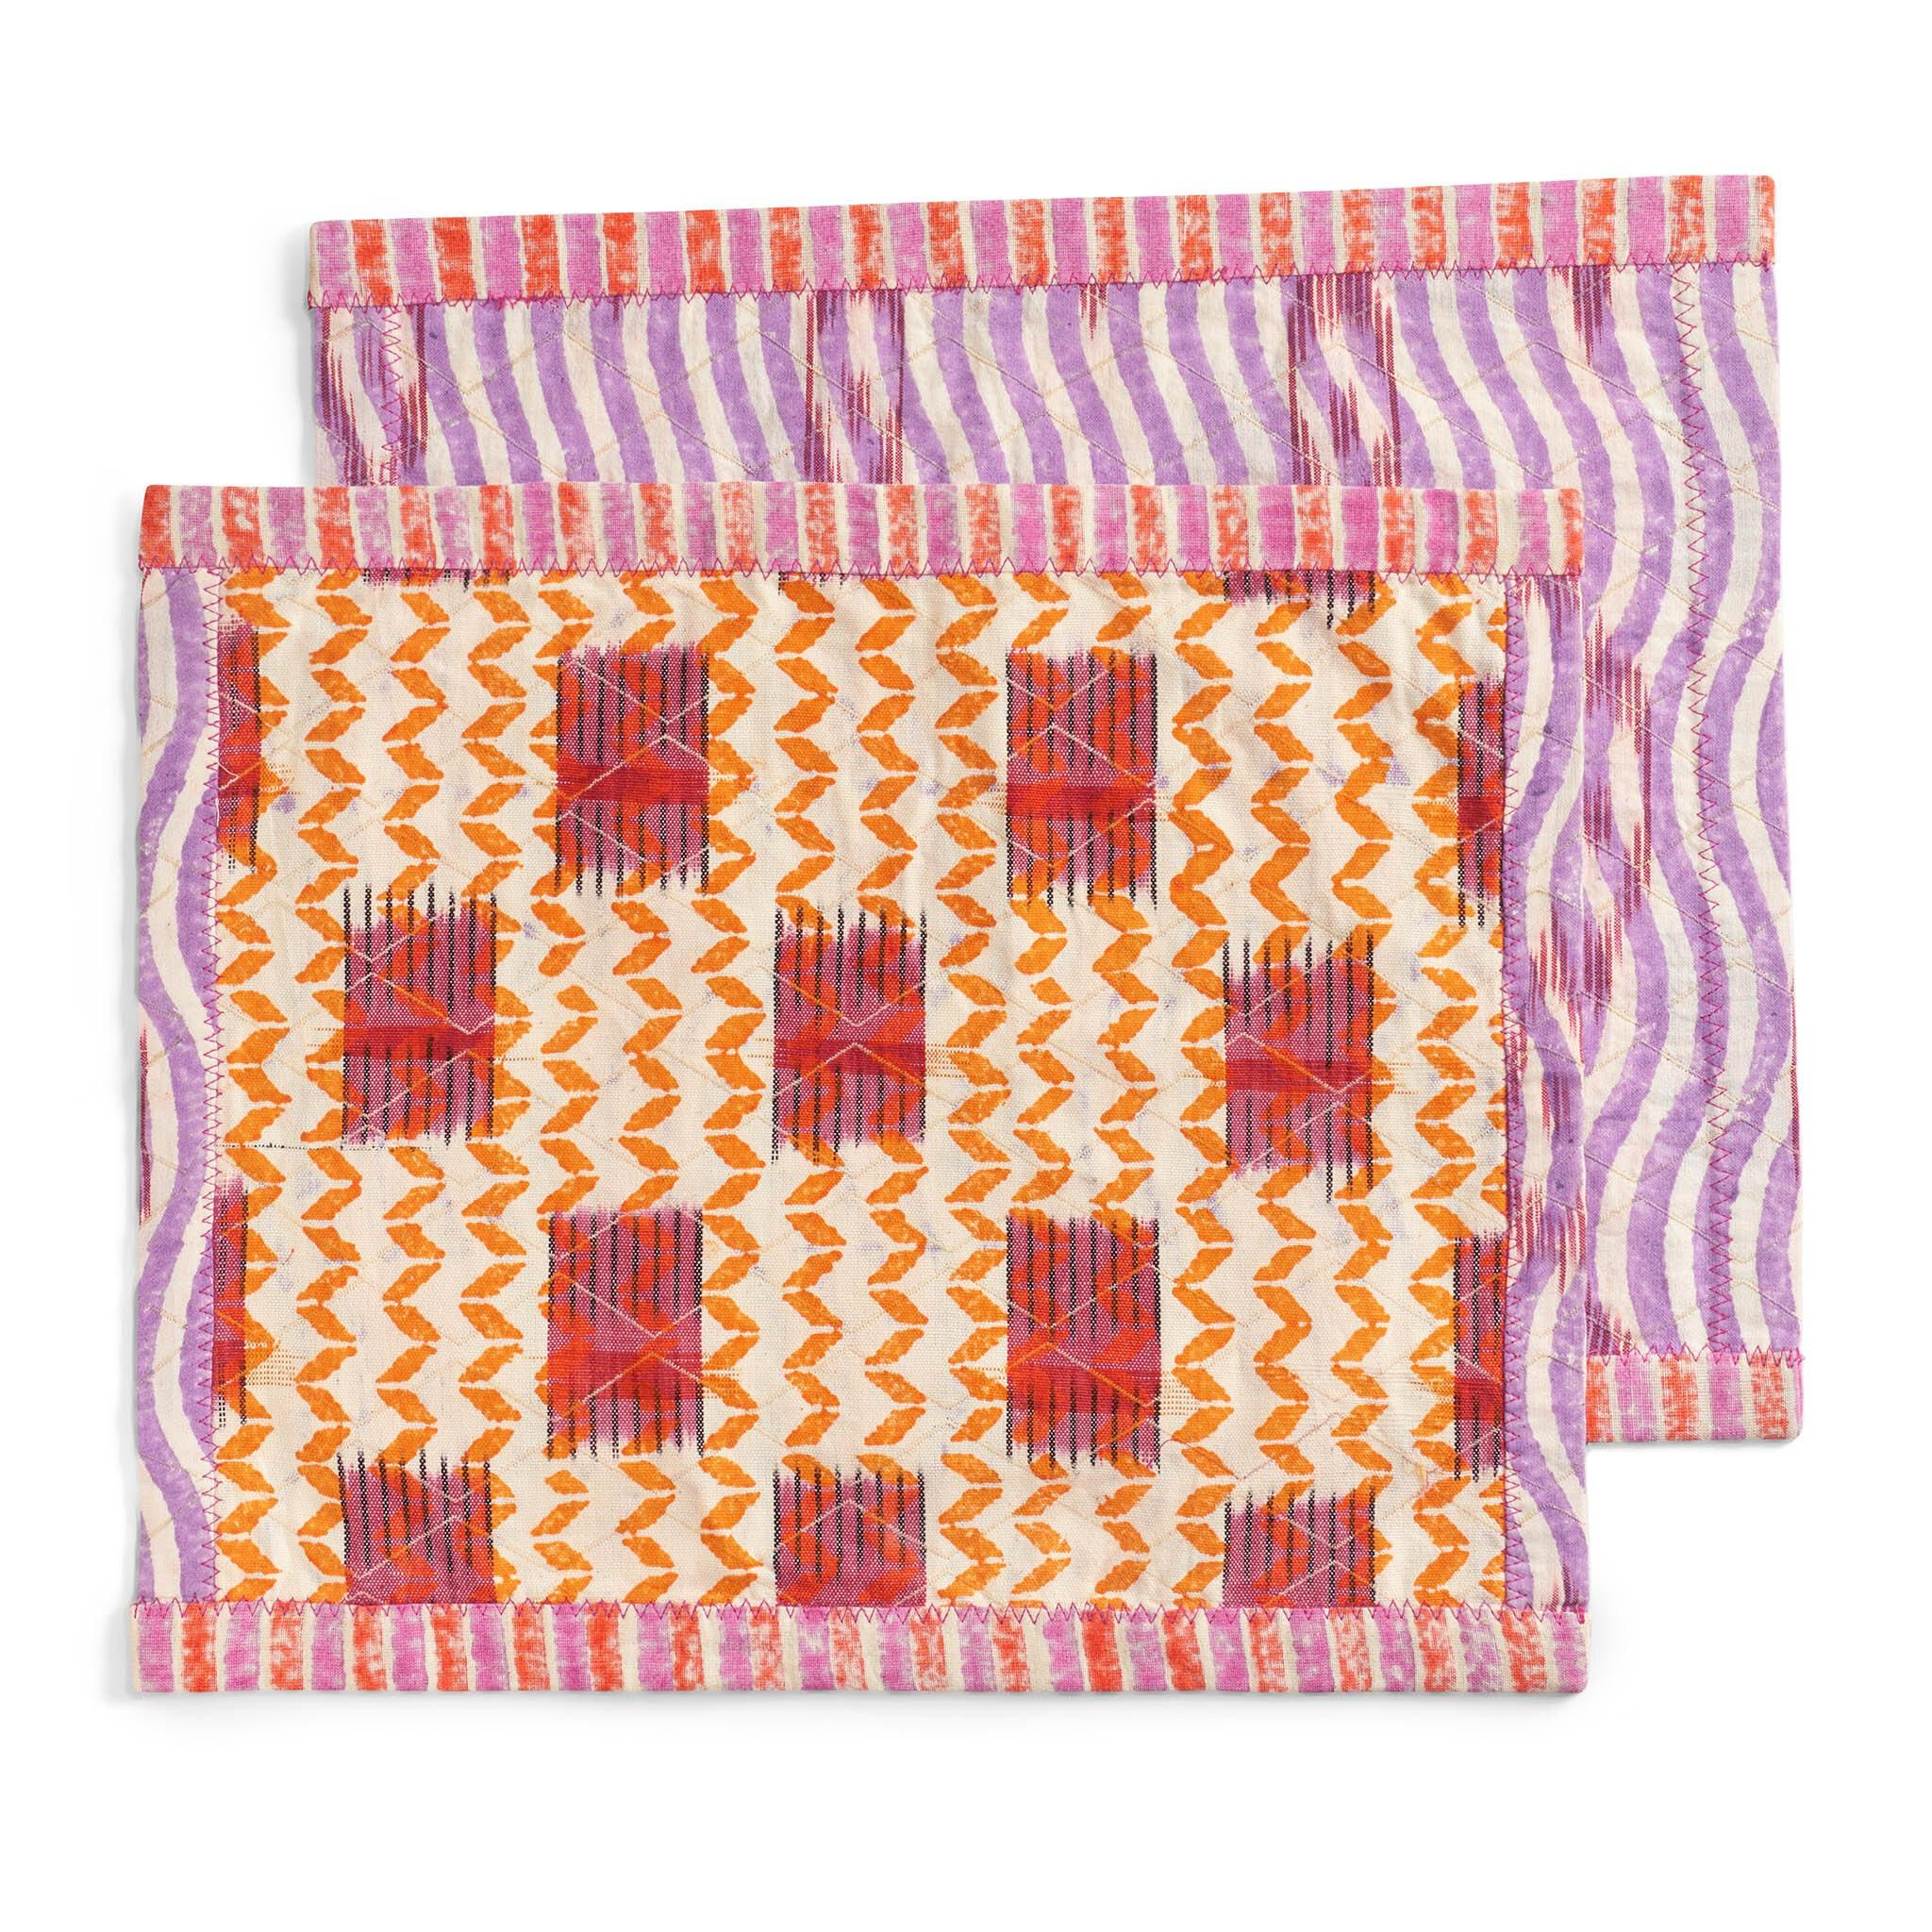 gregory parkinson zig zag vibrant embroidered and hand block printed placement